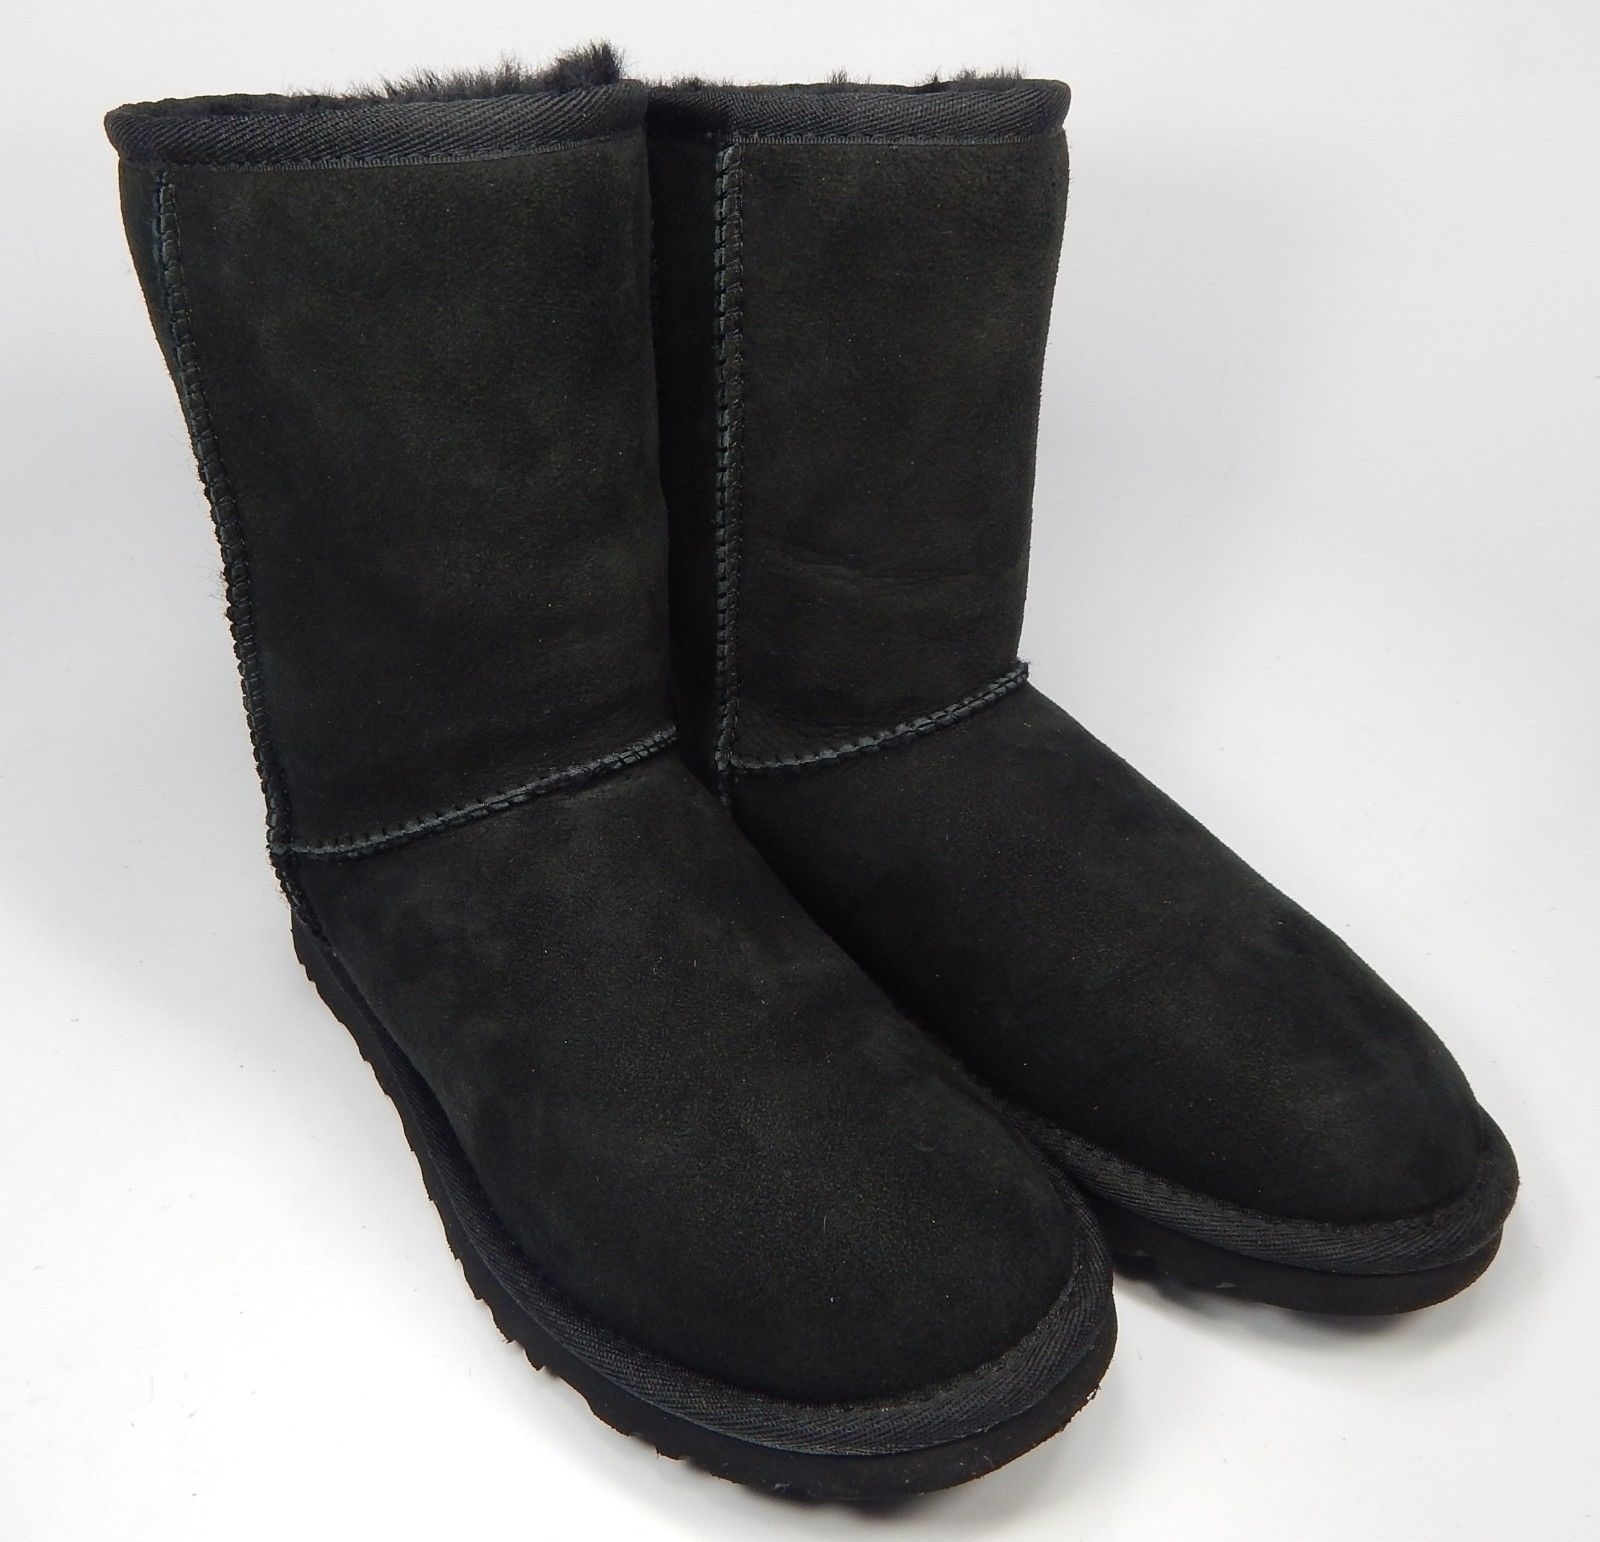 UGG Australia Classic Short Sheepskin Black and 50 similar items. S l1600